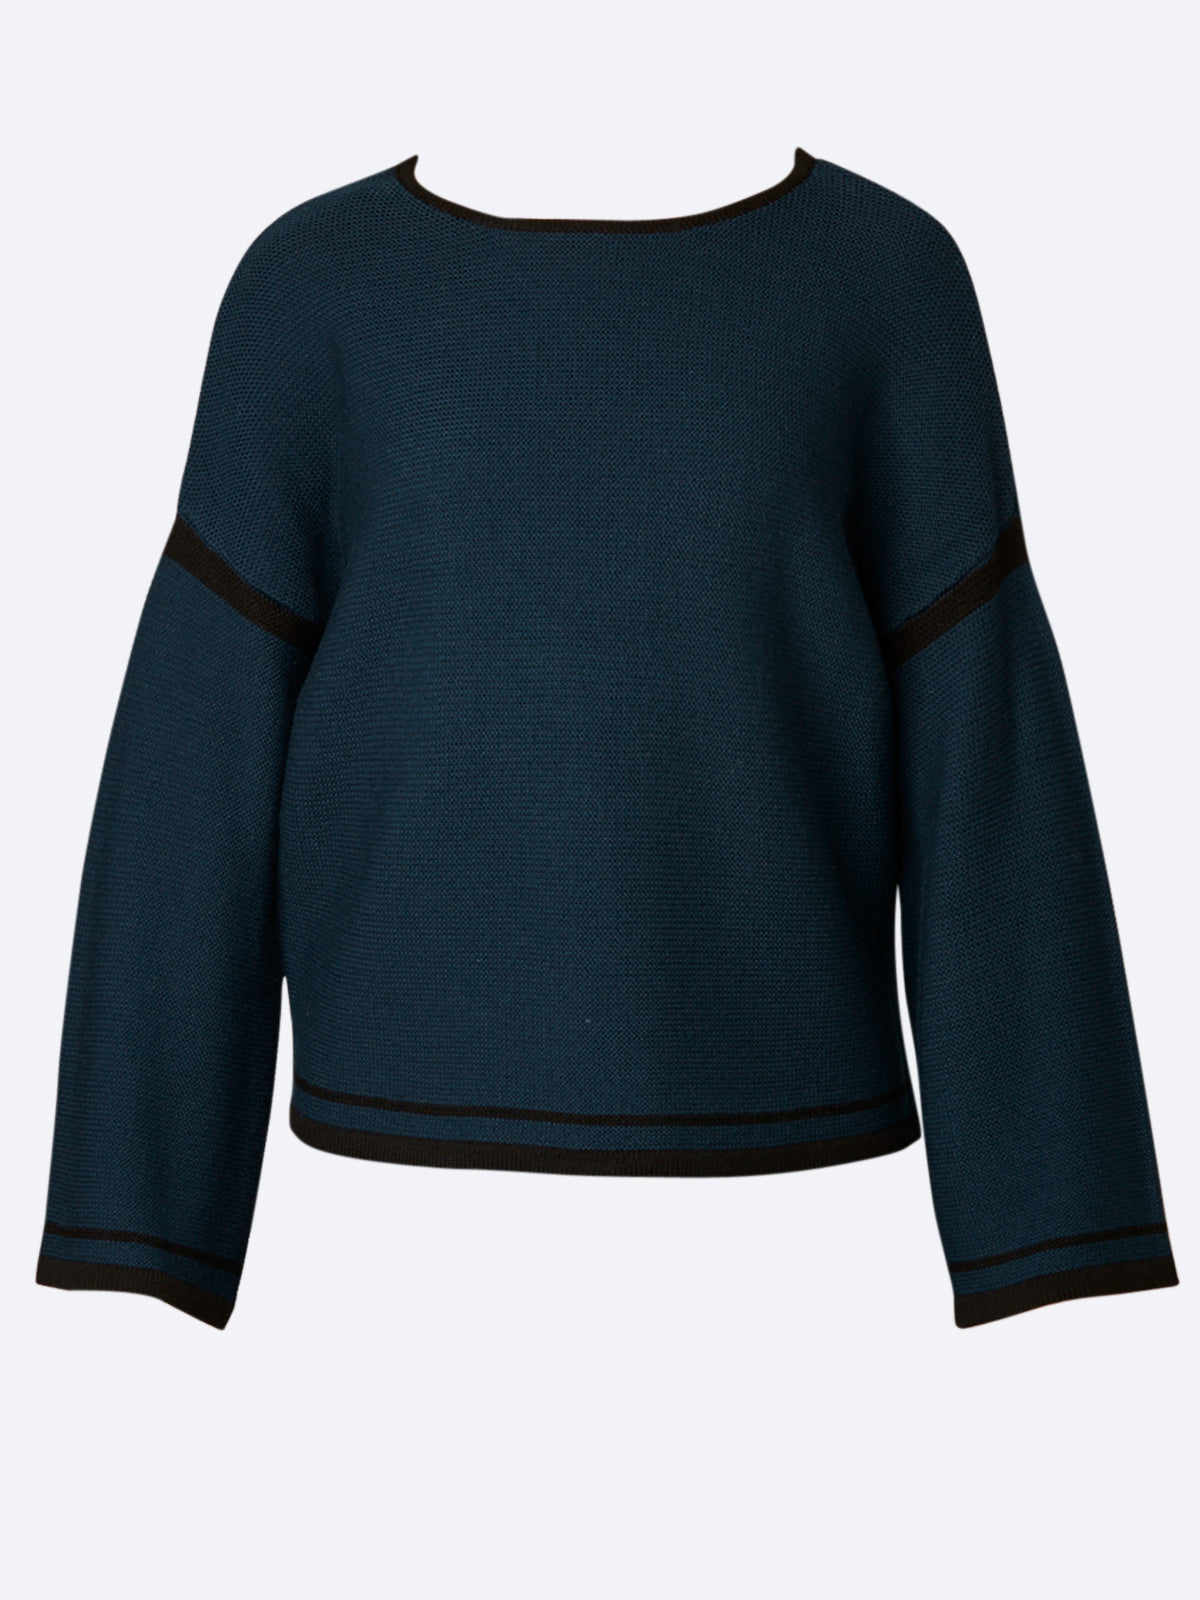 VERGE ALDO WOOL BLEND SWEATER